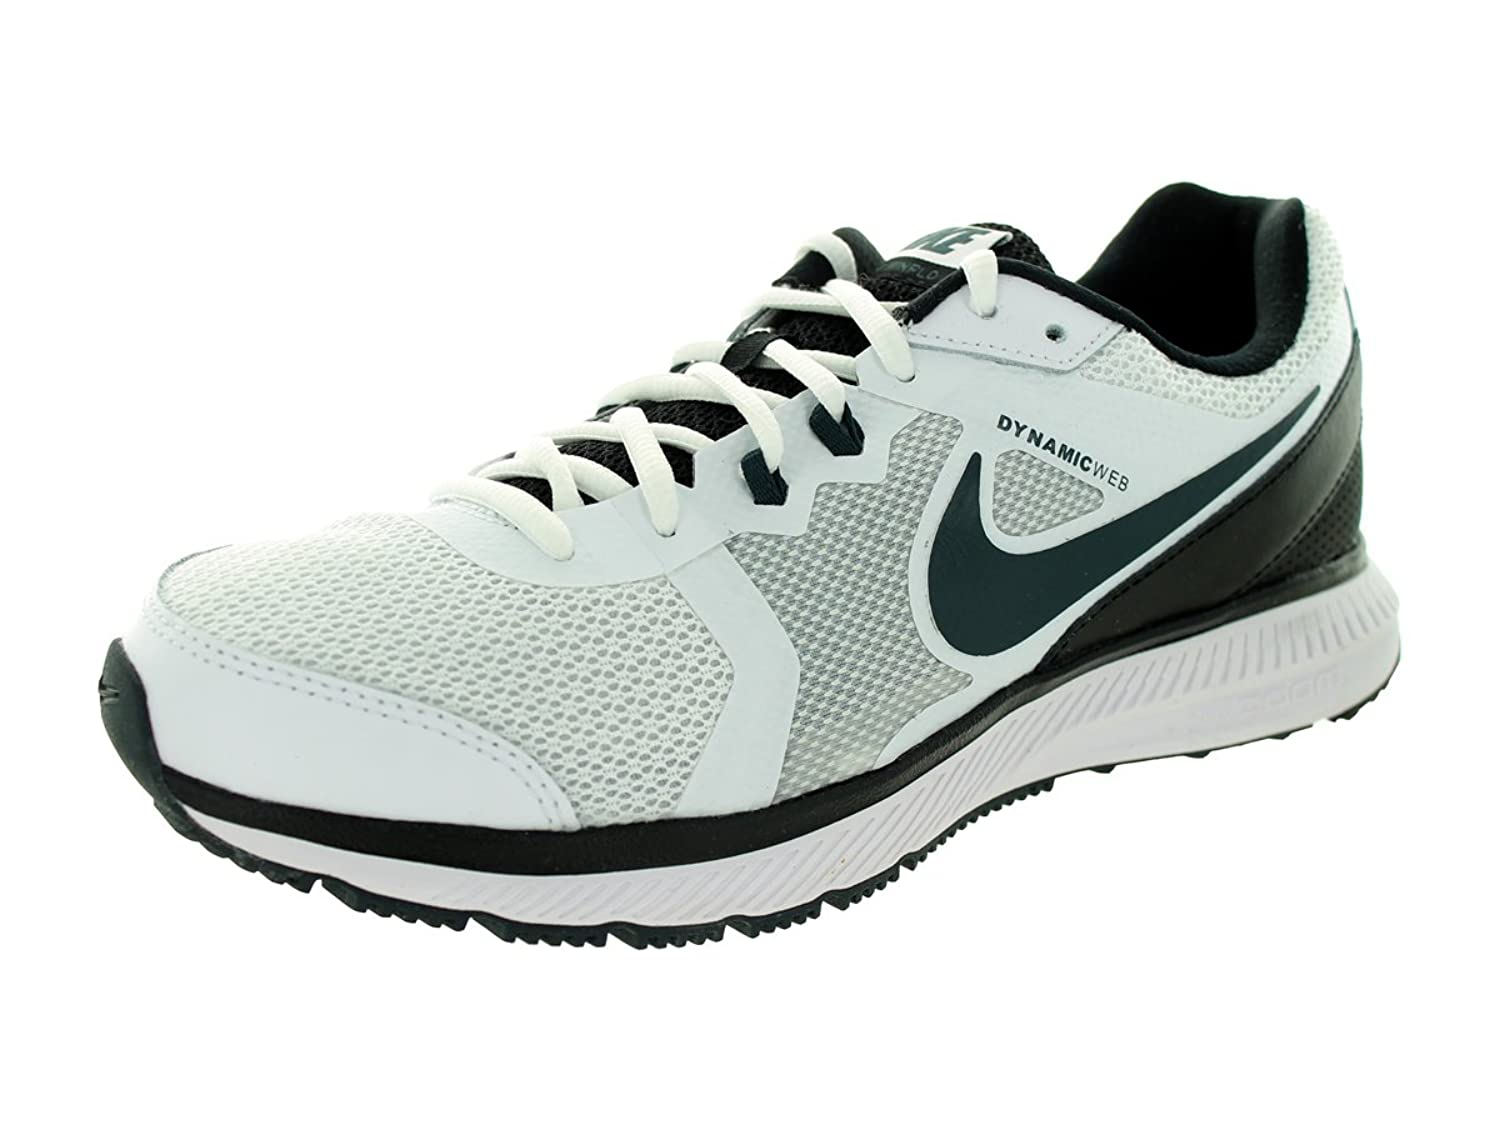 Nike Men s Zoom Winflo Running Shoe White/Black/Classic Charcoal 8.5 D(M)  US: Buy Online at Low Prices in India - Amazon.in